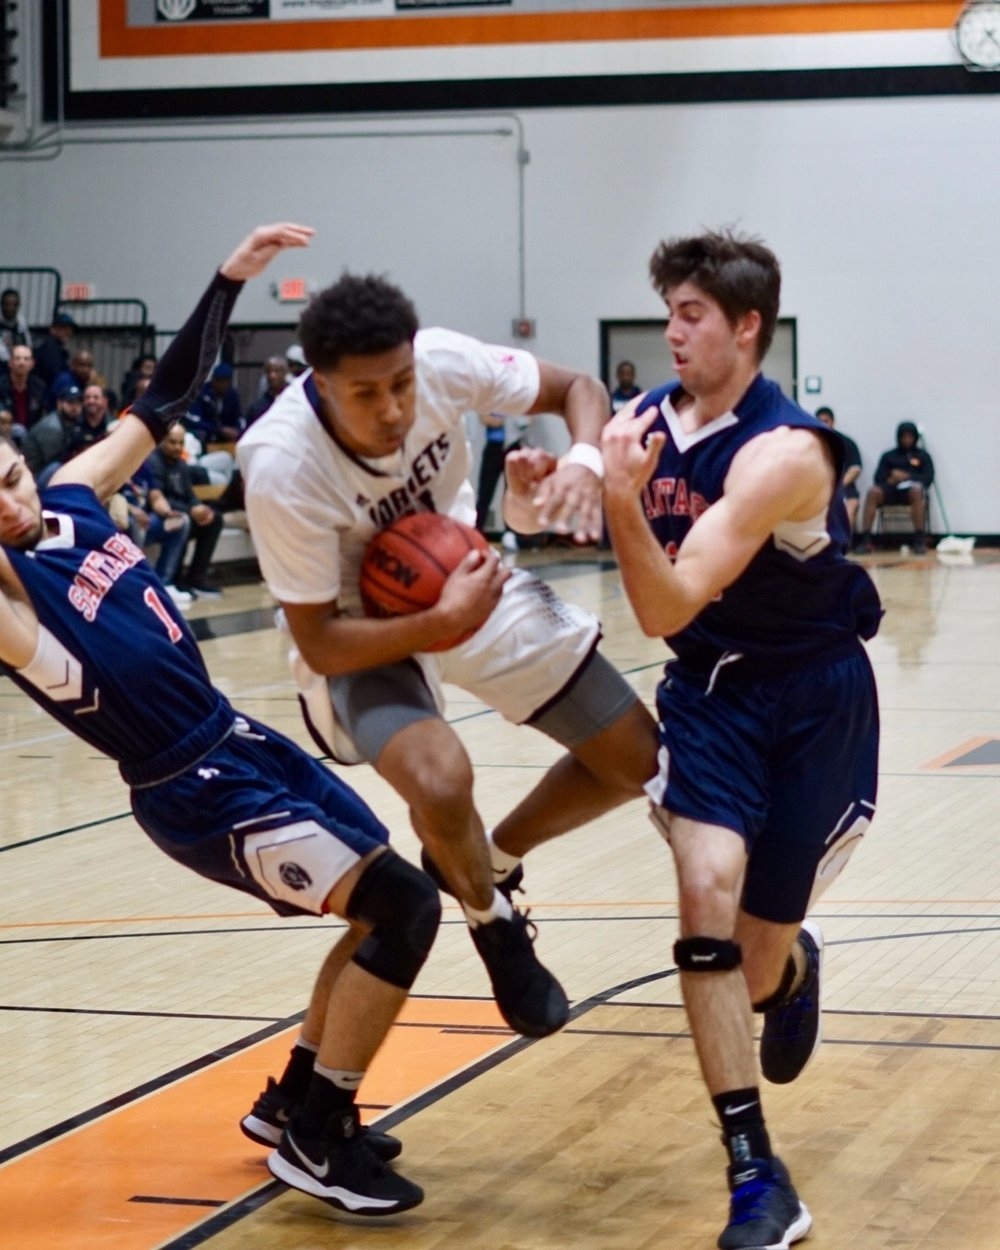 Fullerton College guard, Roger McCobb making his way to the rim defended by Santa Rosa's Skylar Chavez (33) and Atmar Mundu (1). Photos by Emmanuel Vargas.